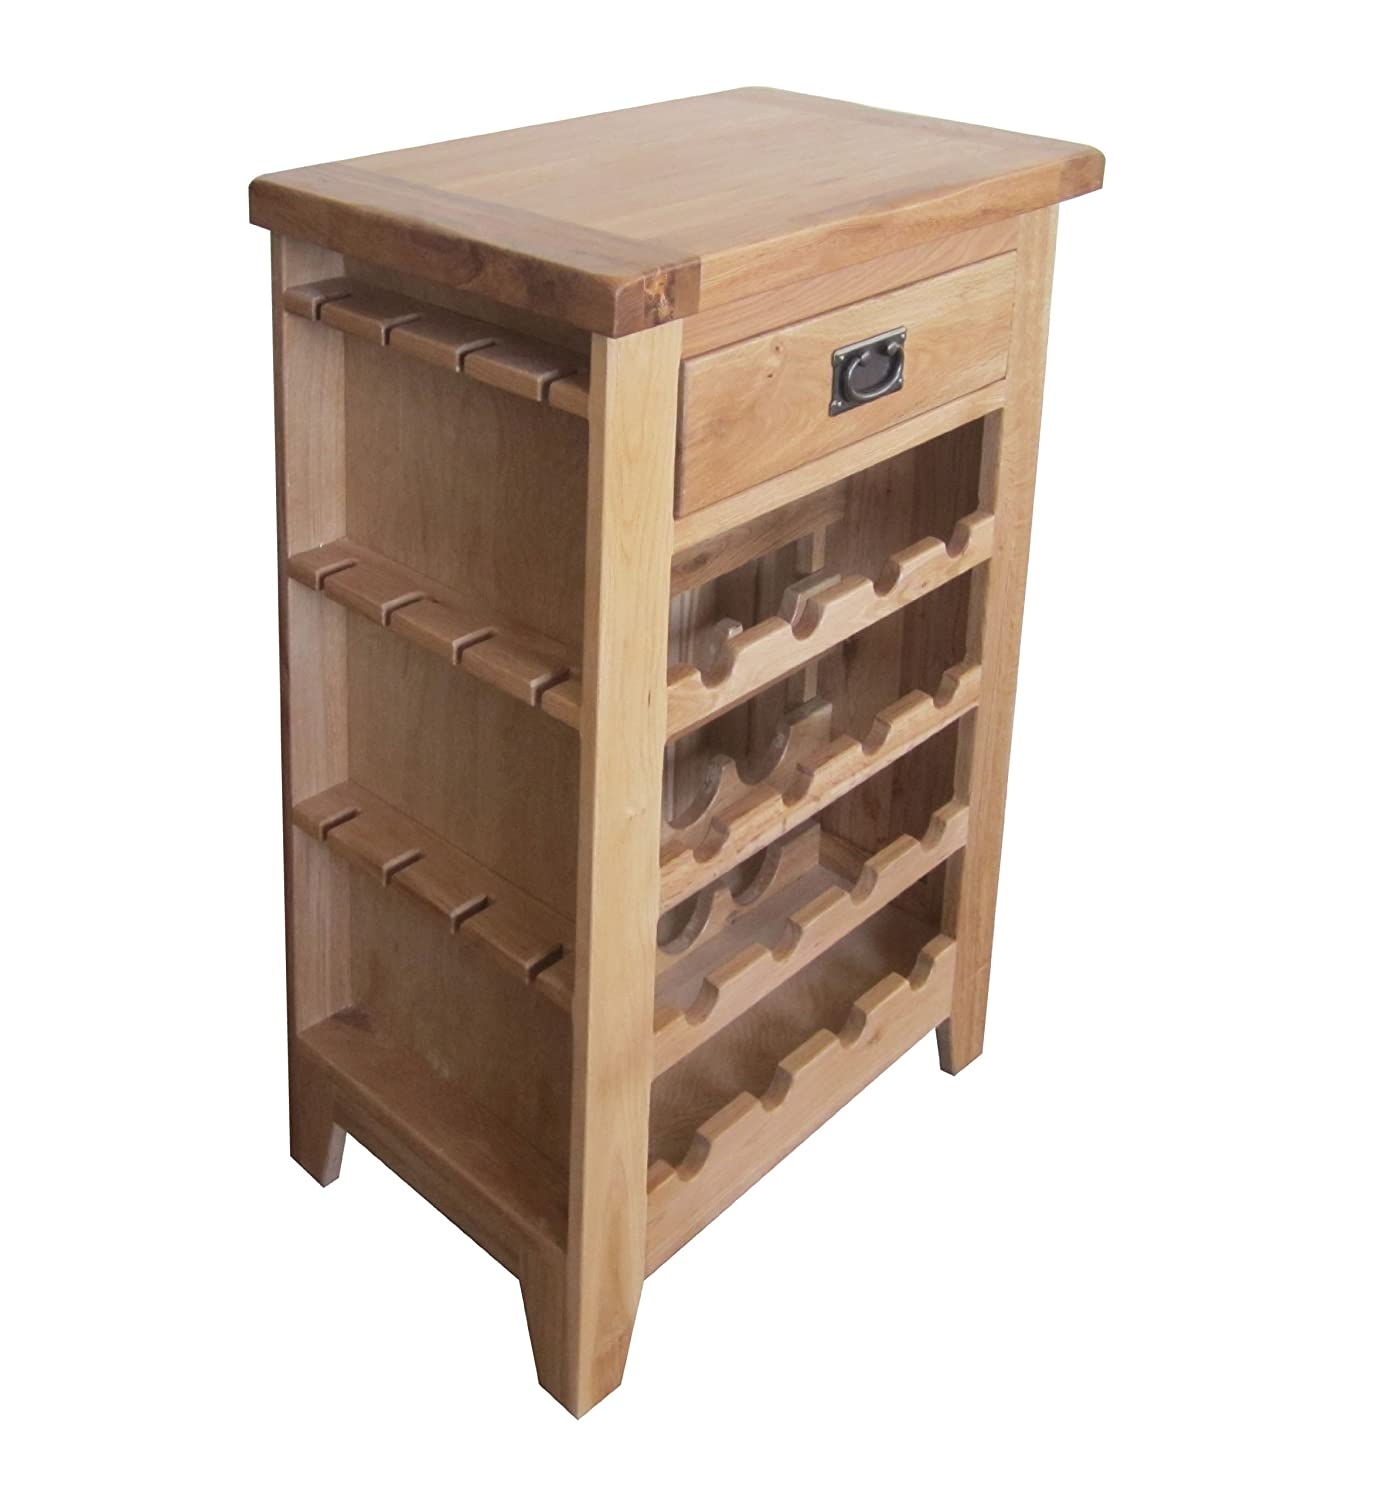 BALMORAL Natural Oak Rustic Farmhouse Wine Cabinet Rack with